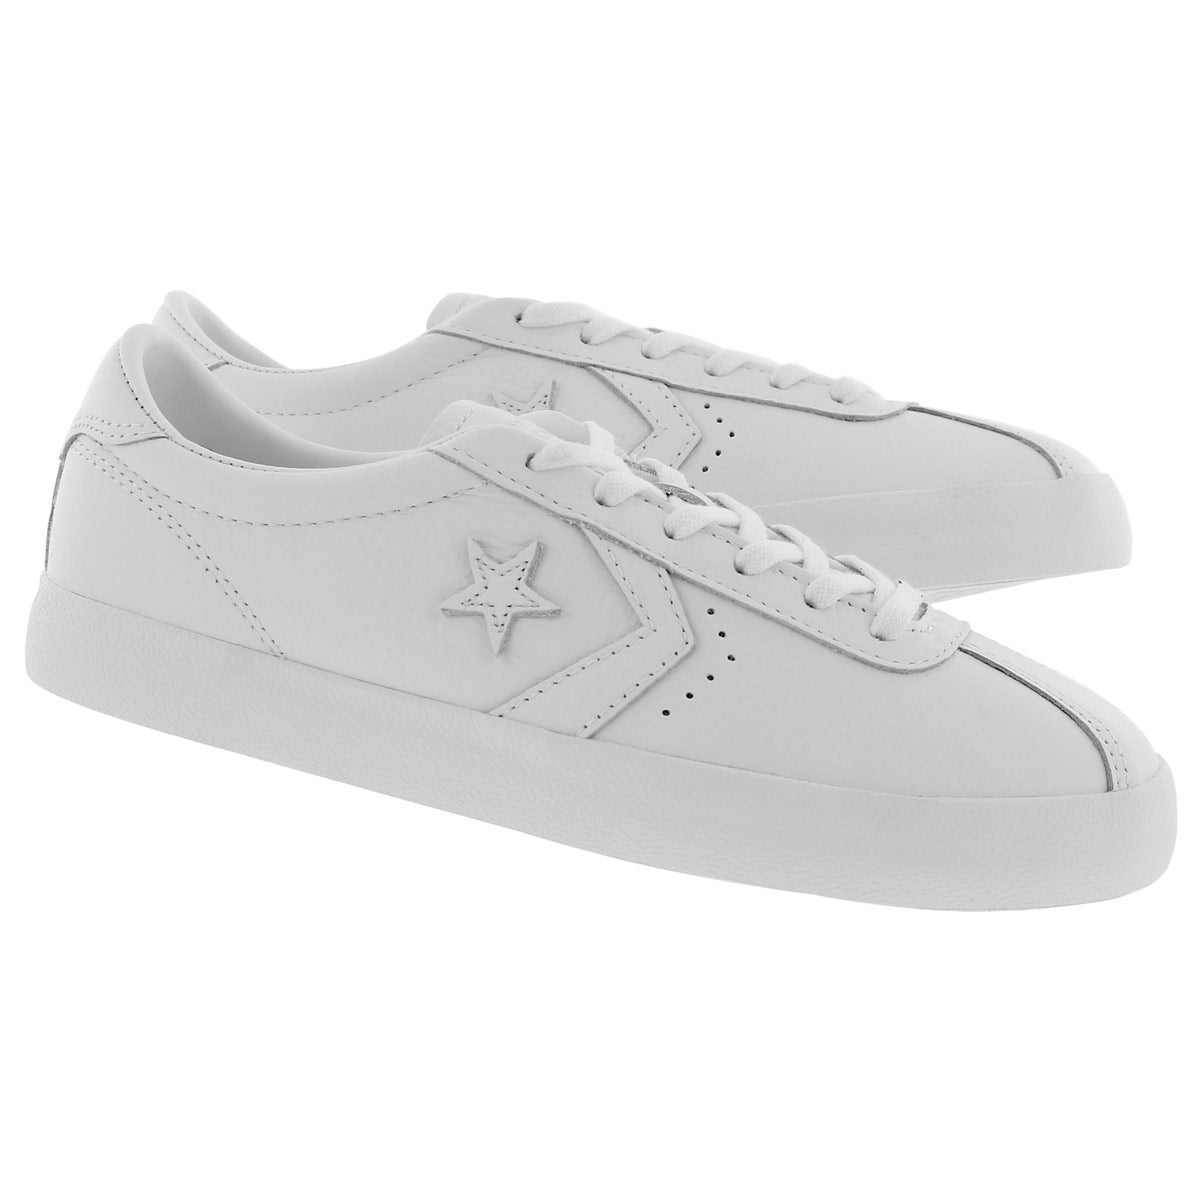 Lds Breakpoint Leather wht fashion snkr